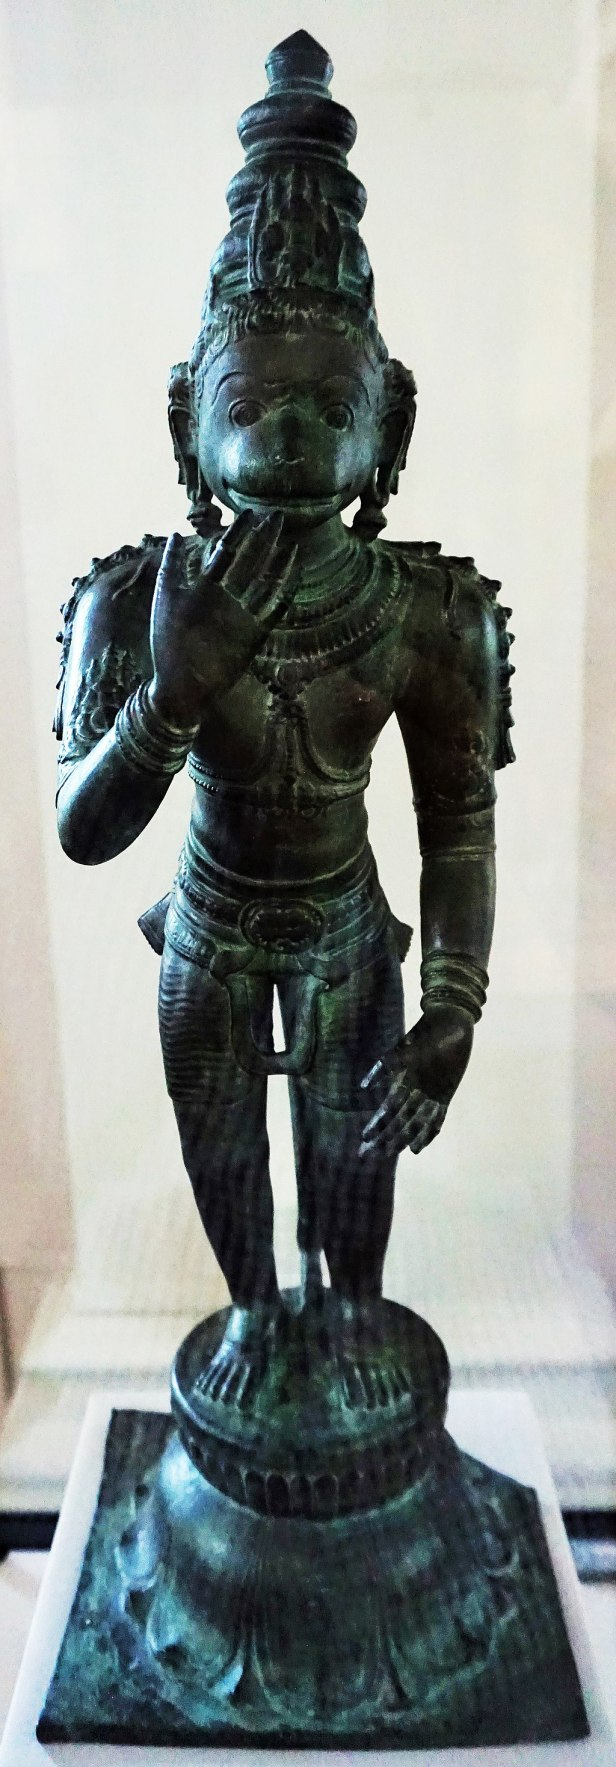 Asian Civilisations Museum - Hanuman